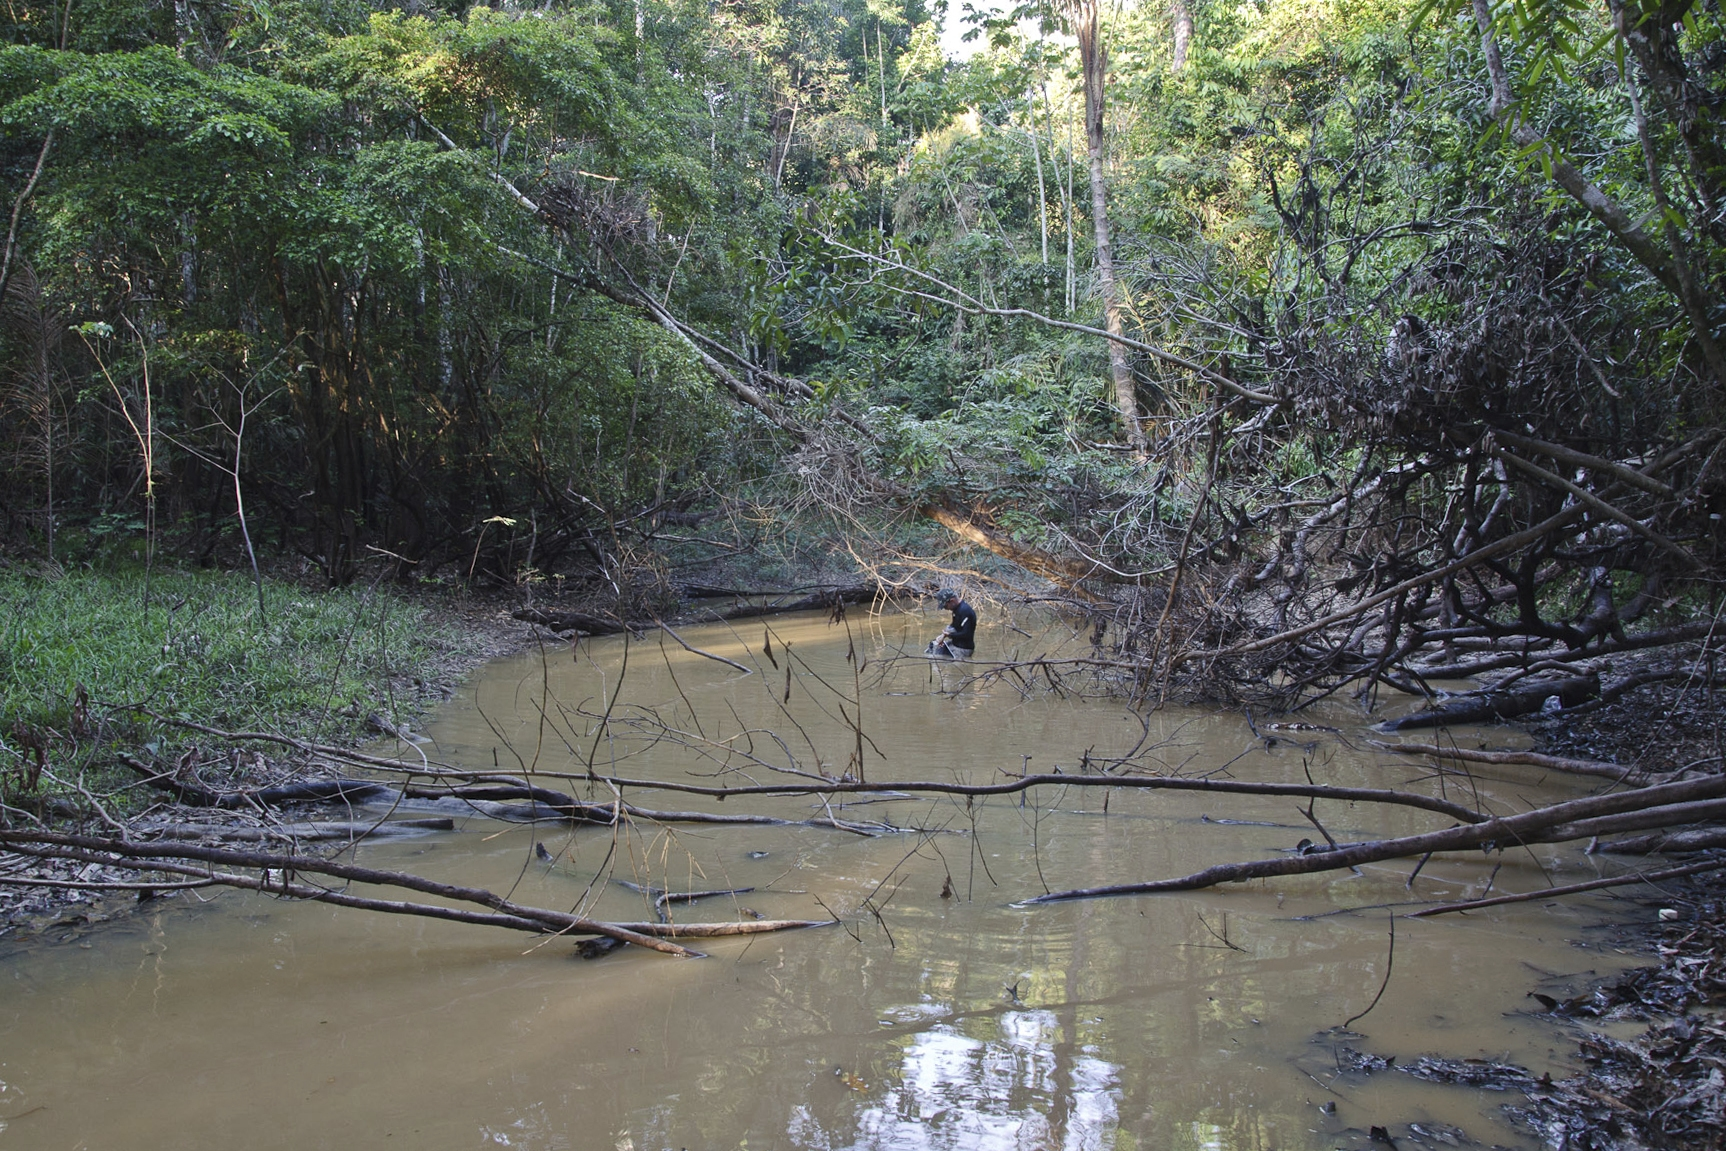 This undated photo provided by researchers in September 2019 shows typical electric eel lowland habitat in Brazil's Itaquai River. A newly discovered electric eel, Electrophorus varii, primarily lives in lowland regions of the Amazon. (D. Bastos via AP)